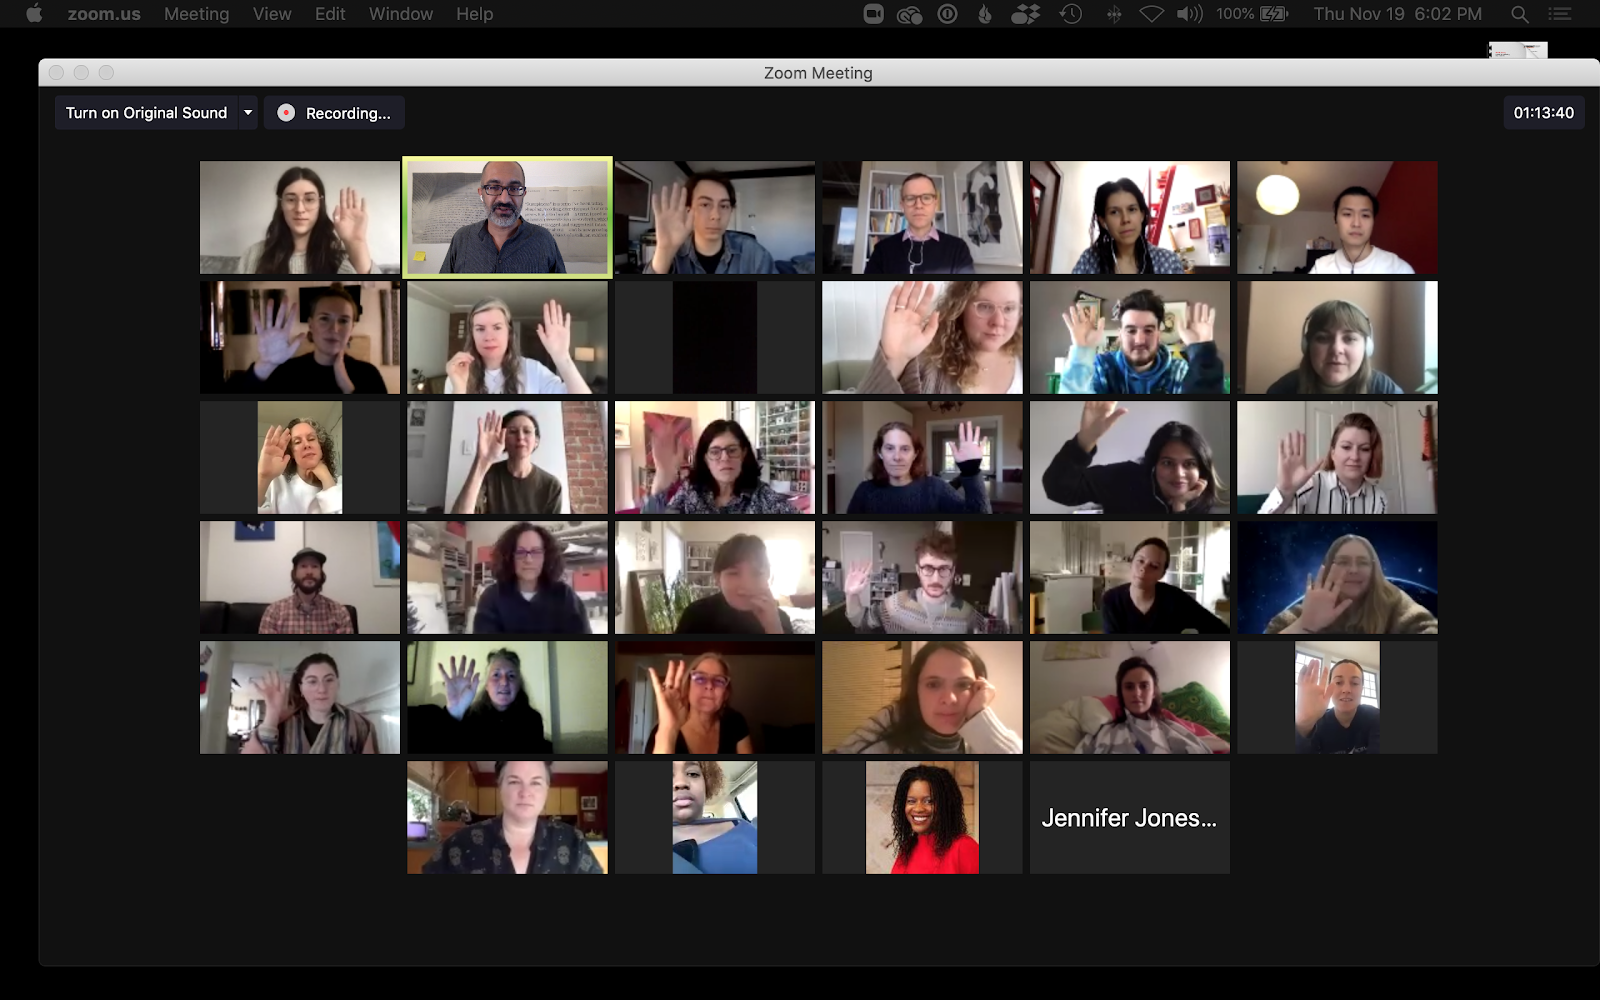 Screenshot of Zoom video conference with many people raising their hands